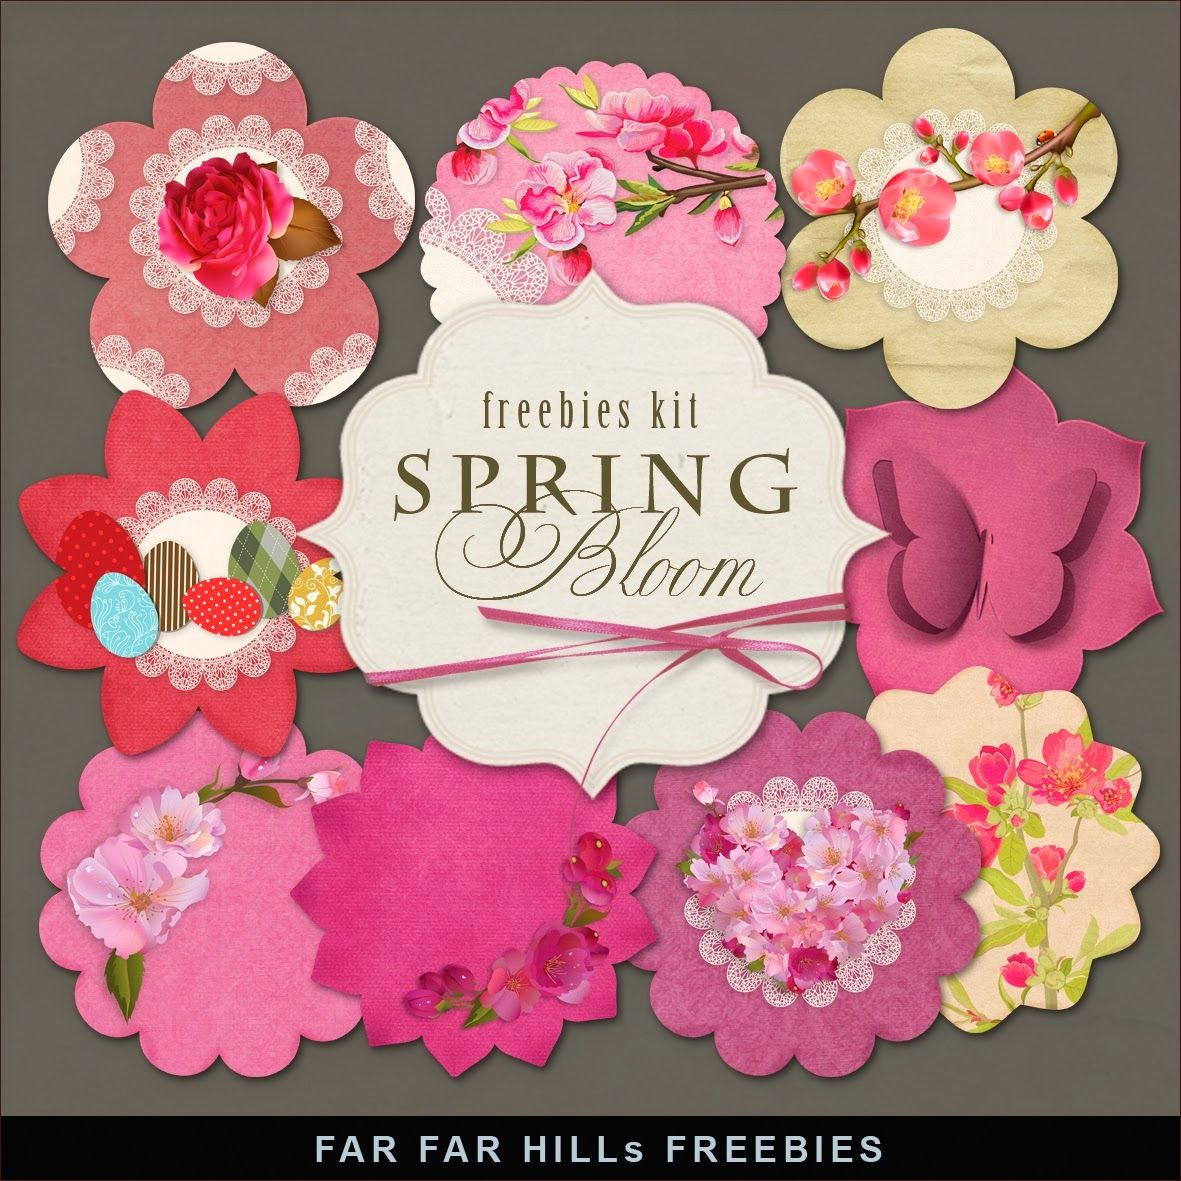 New Freebies Kit of Labels - Spring Bloom